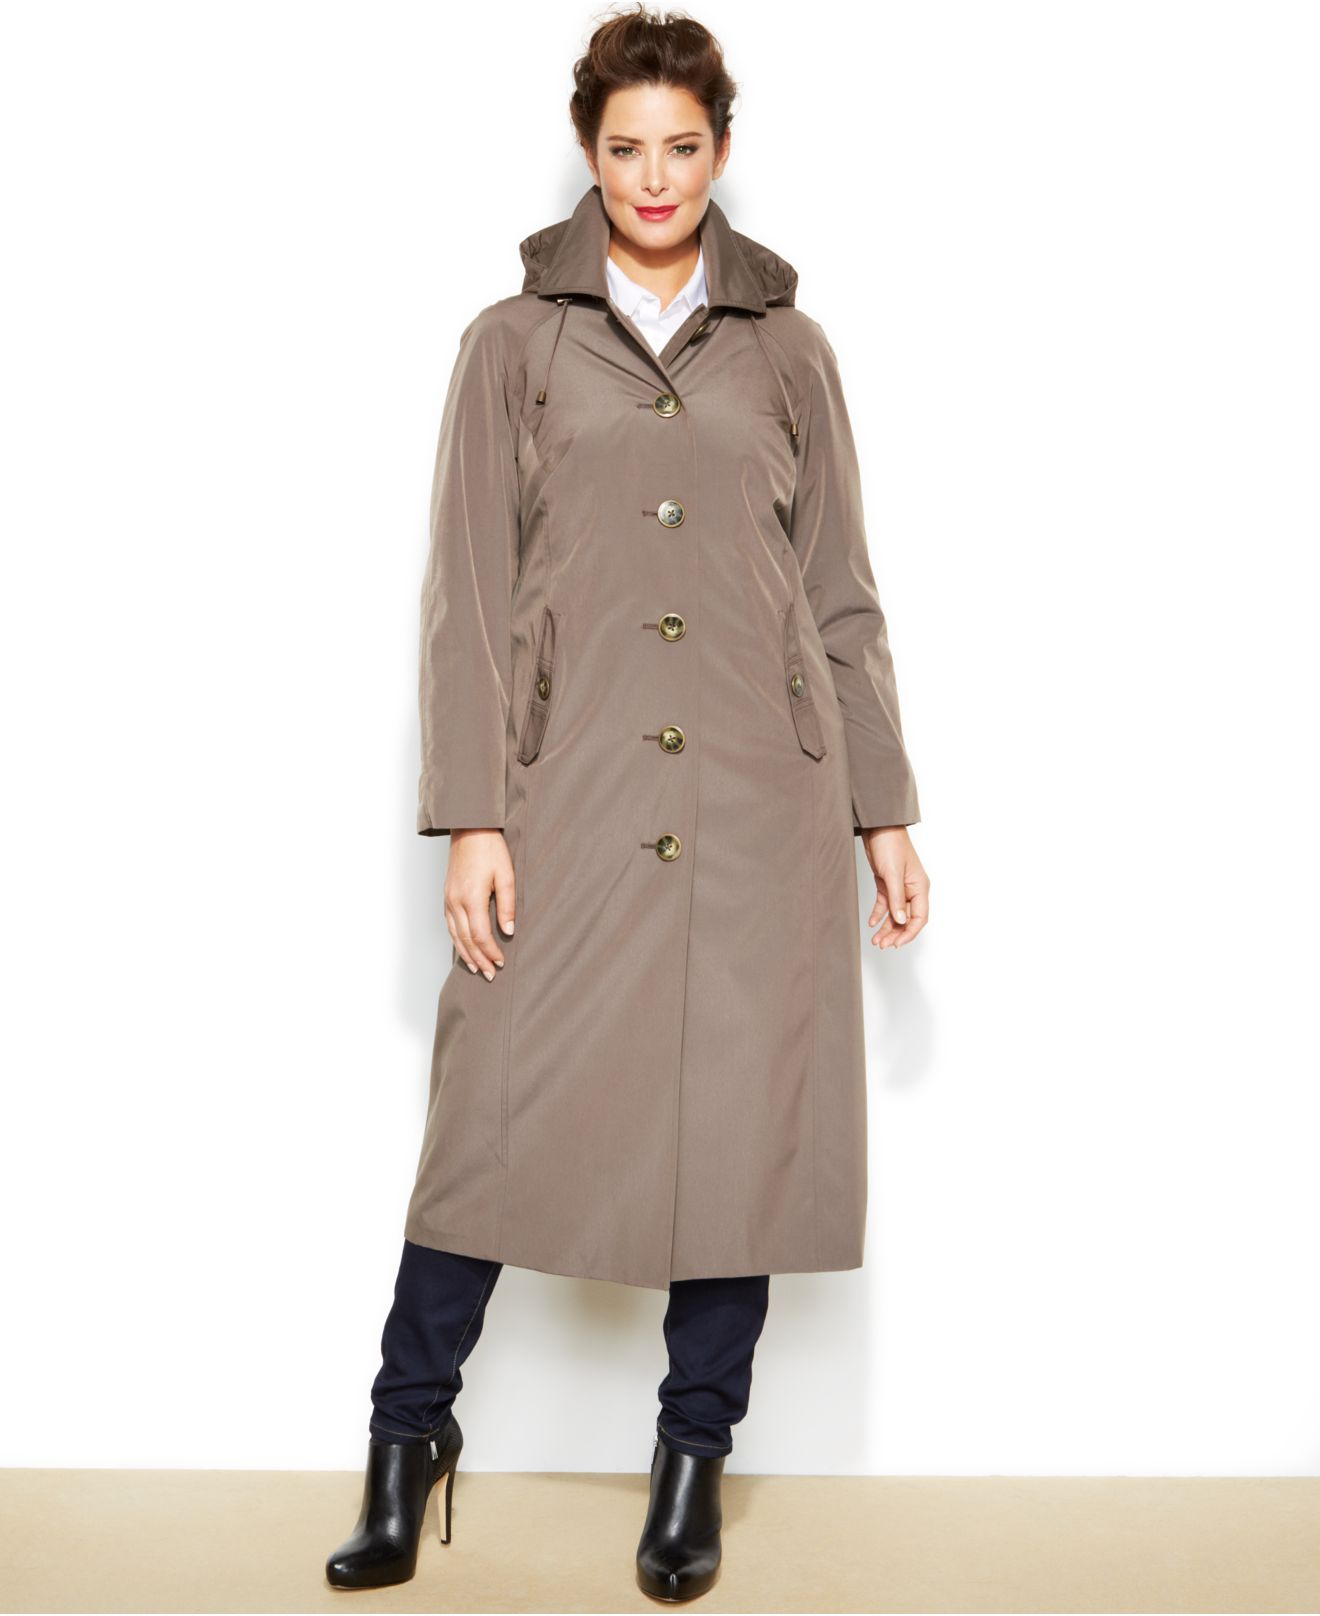 505181bee7f Lyst - London Fog Plus Size Long Belted Trench Coat in Brown